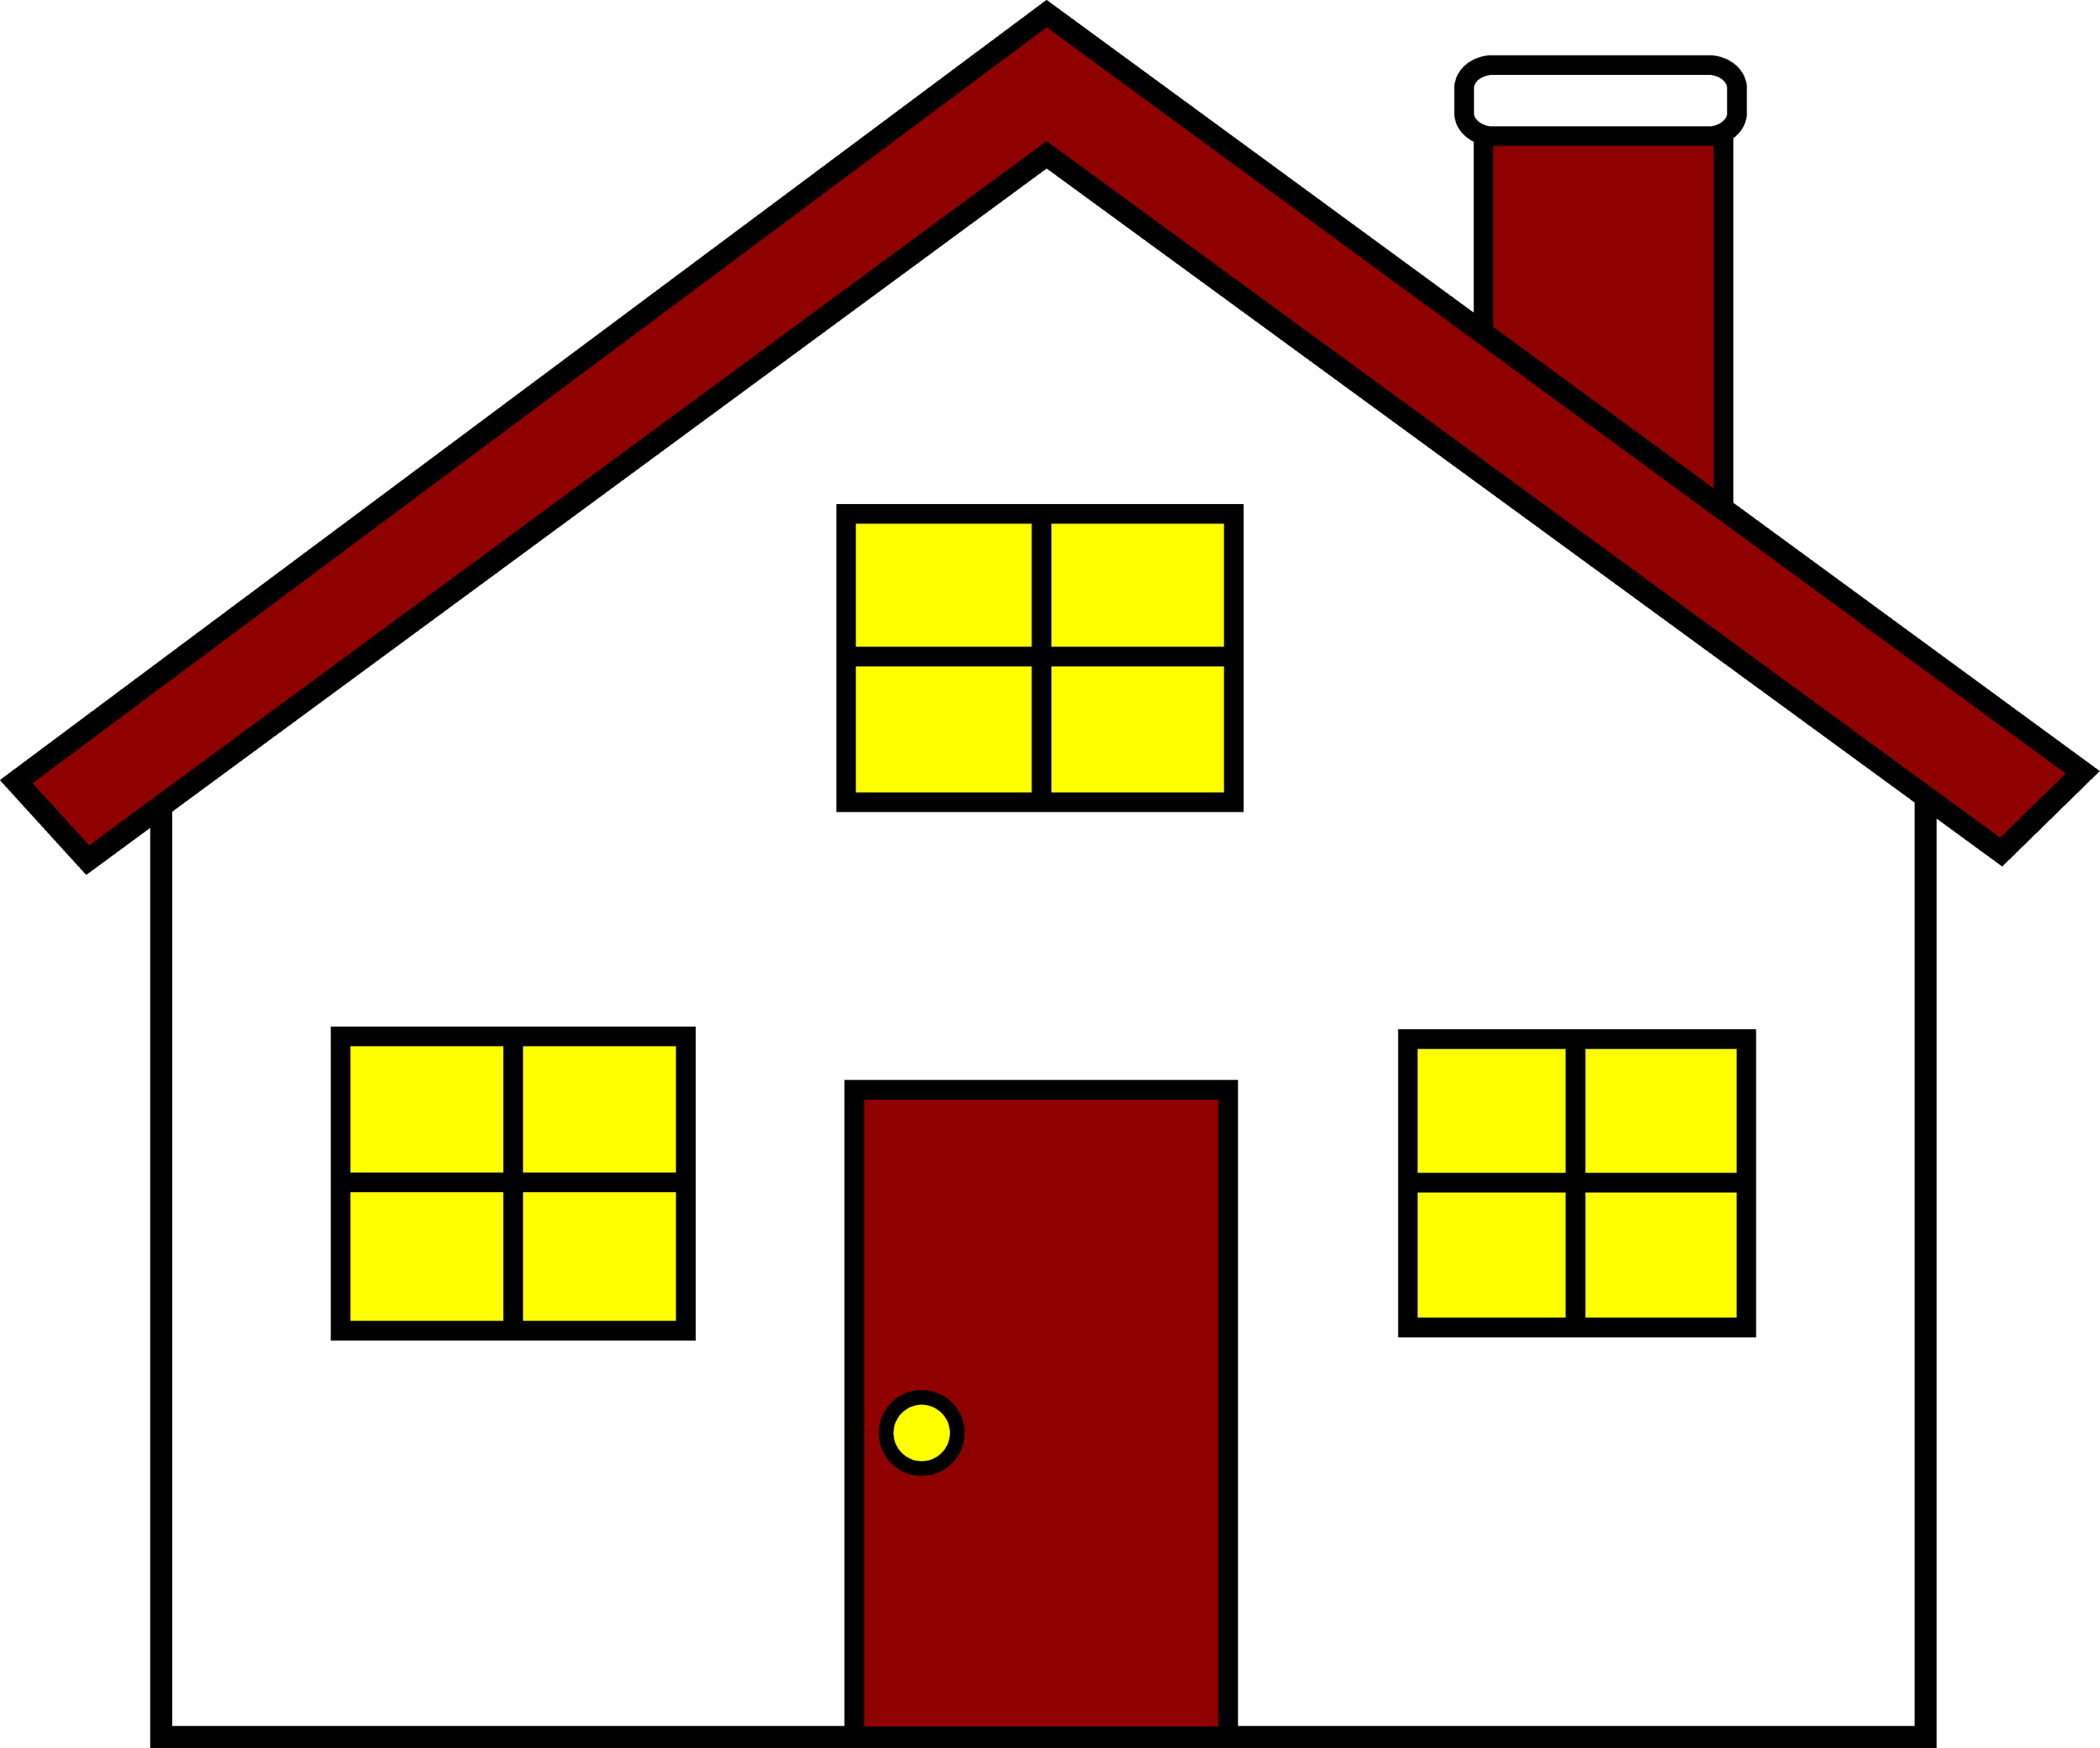 house clipart png - photo #43